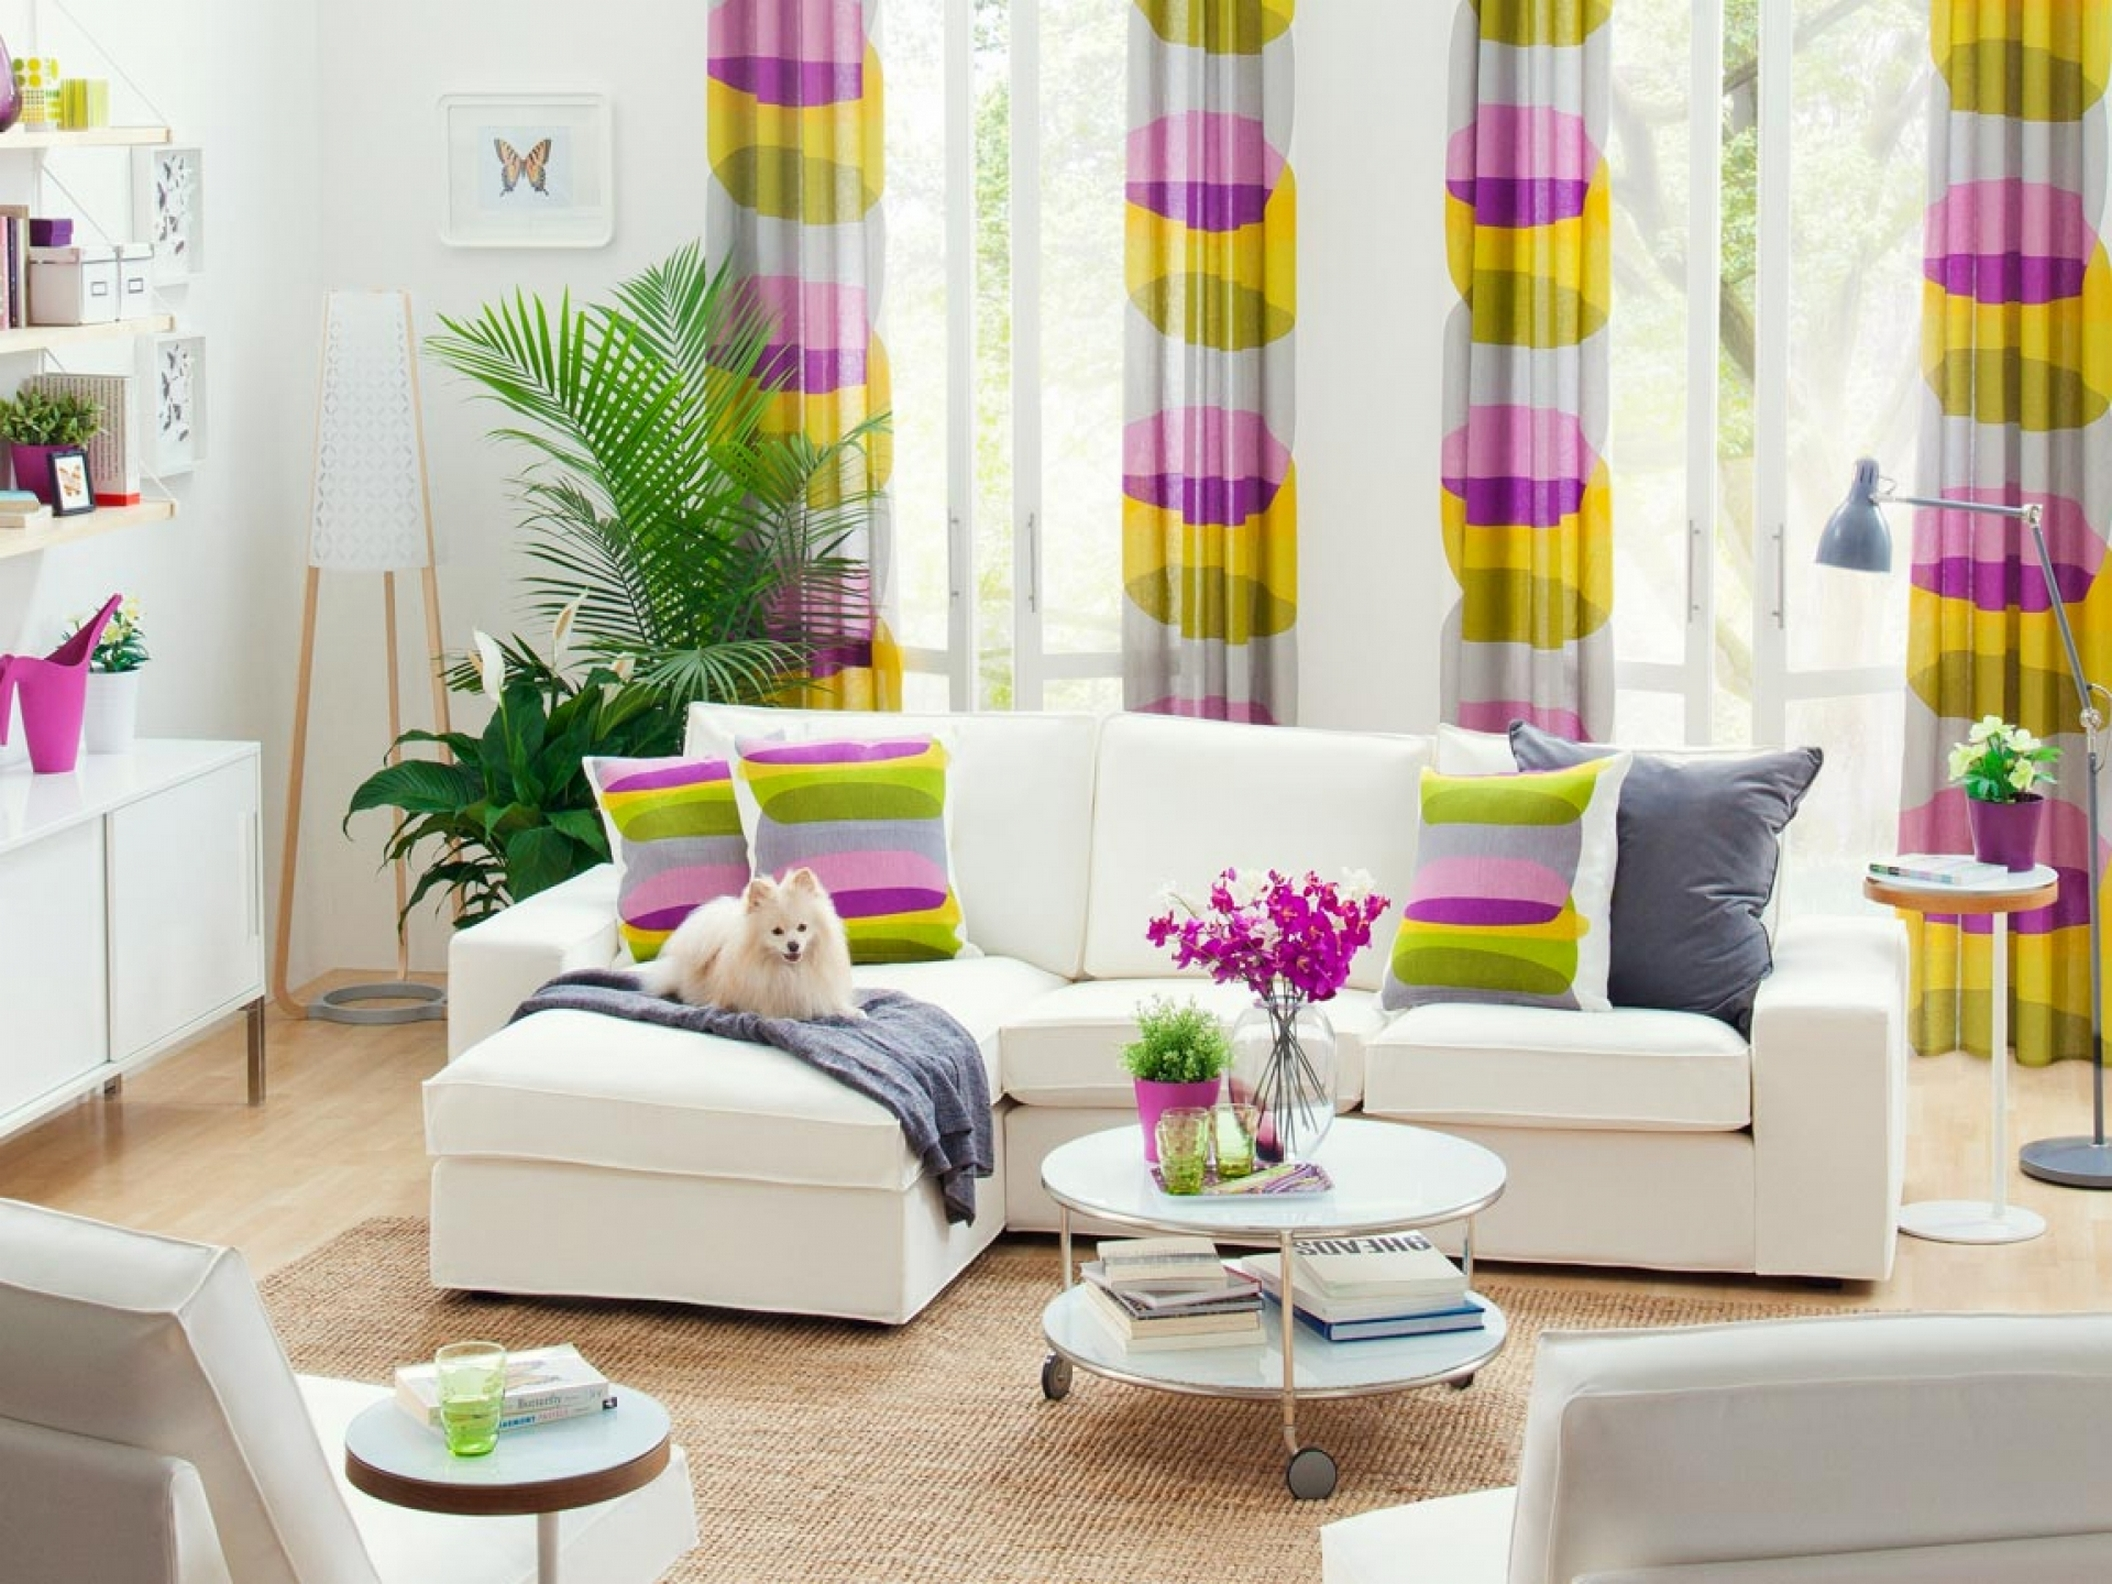 75 Ideas And Tips Interior Design Living Room Simple House Of Cheap And Charming Architecturein